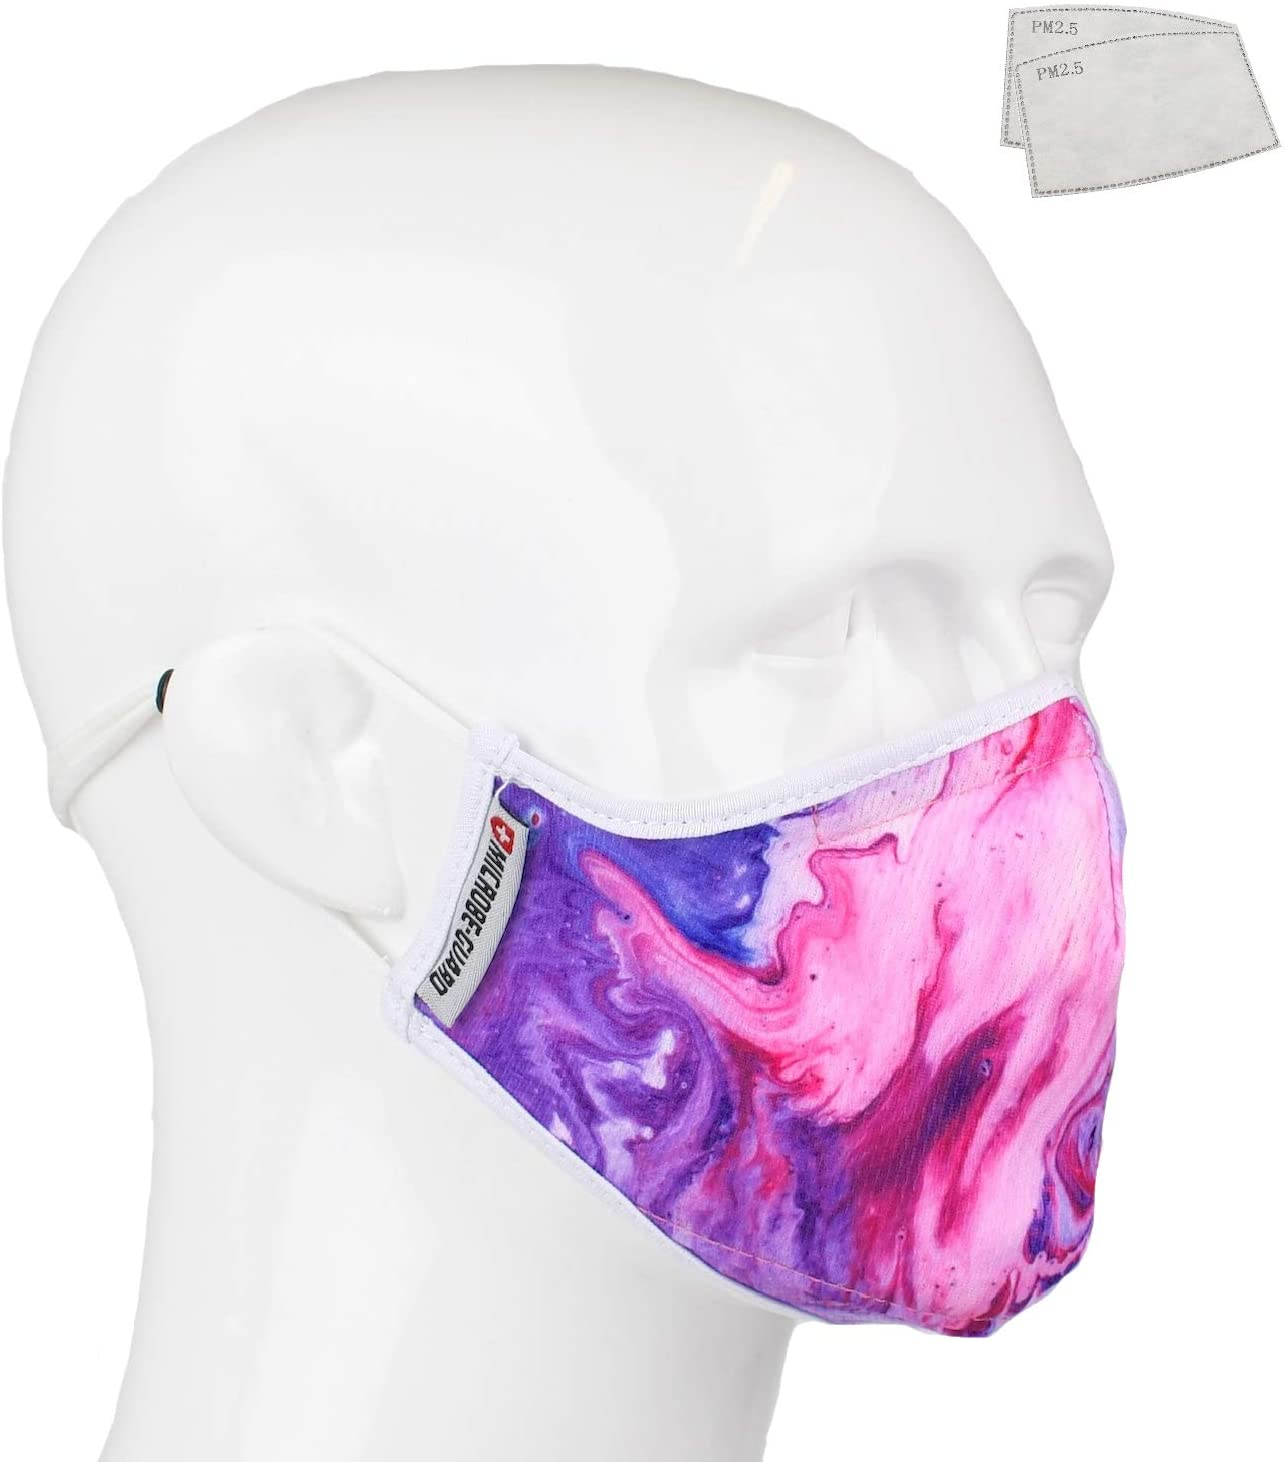 RGK Unique Breathable-Reusable Microfiber Adult Safety Covering (Washable) | Two Layer + 2 Insertable PM2.5 Filters | Adjustable Nose Wire & Ear Loops | Men, Women, Teens (Purple Acrylic)